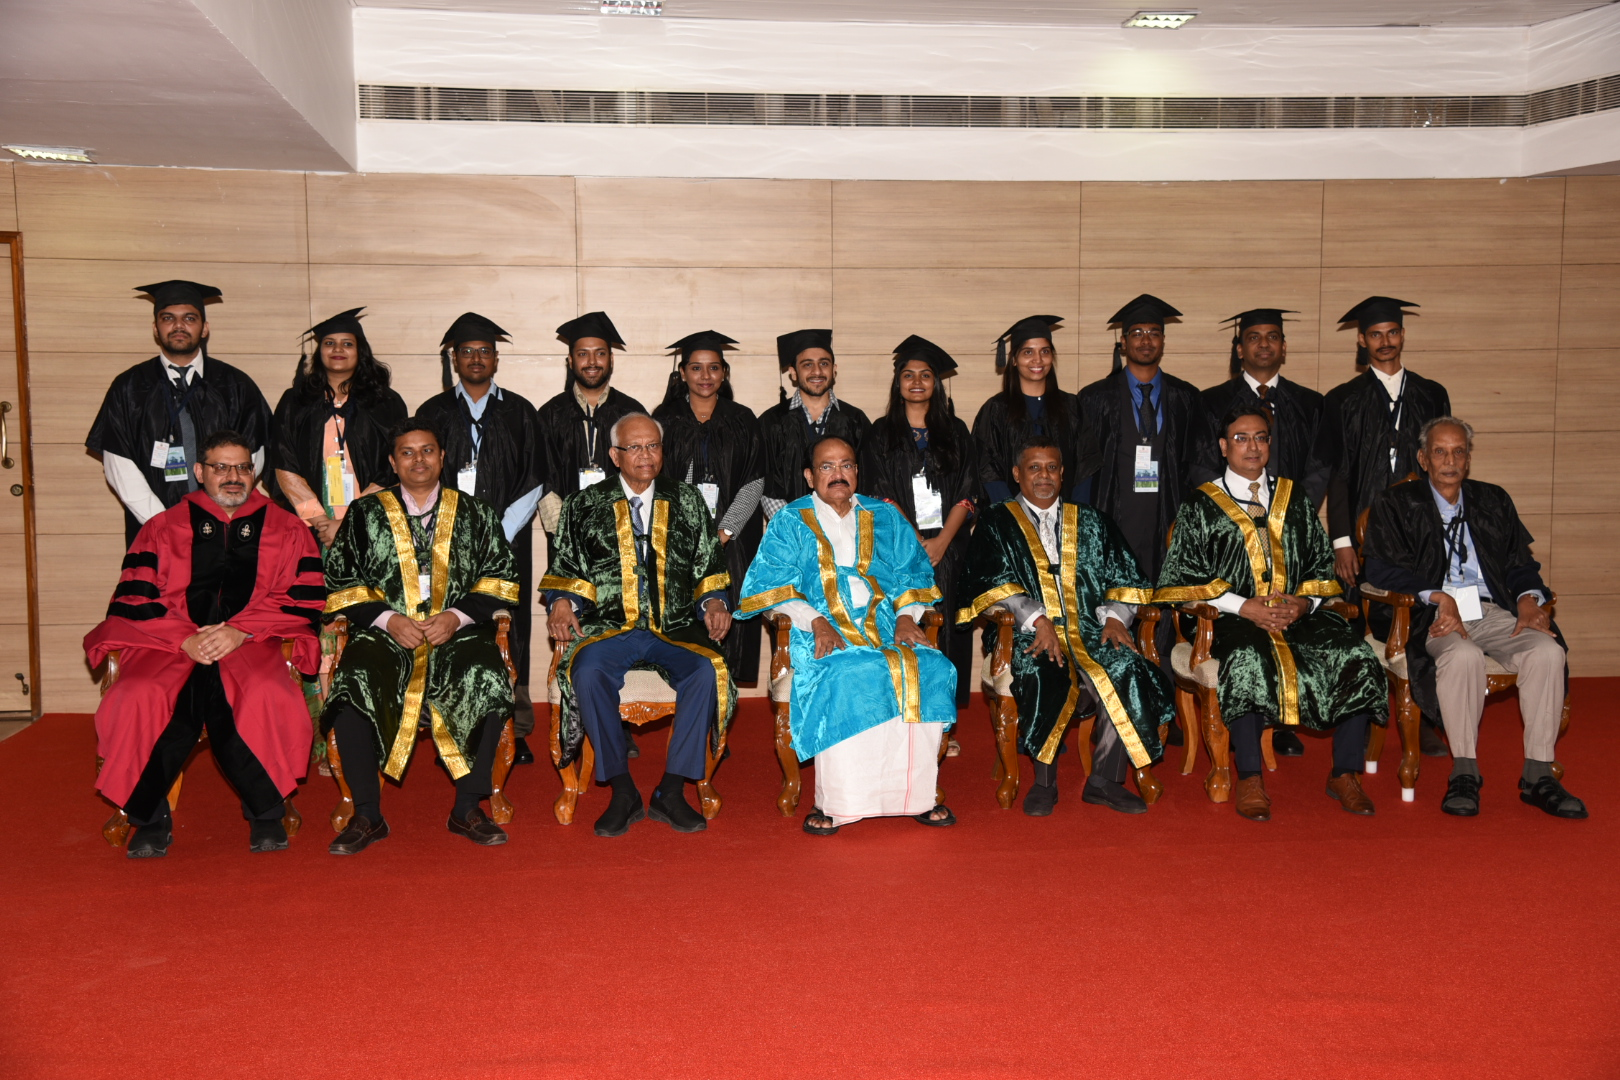 The Vice President, Shri M. Venkaiah Naidu with the Faculty Members at the Convocation of the Great Lakes Institute of Management, in Chennai on May 21, 2019.